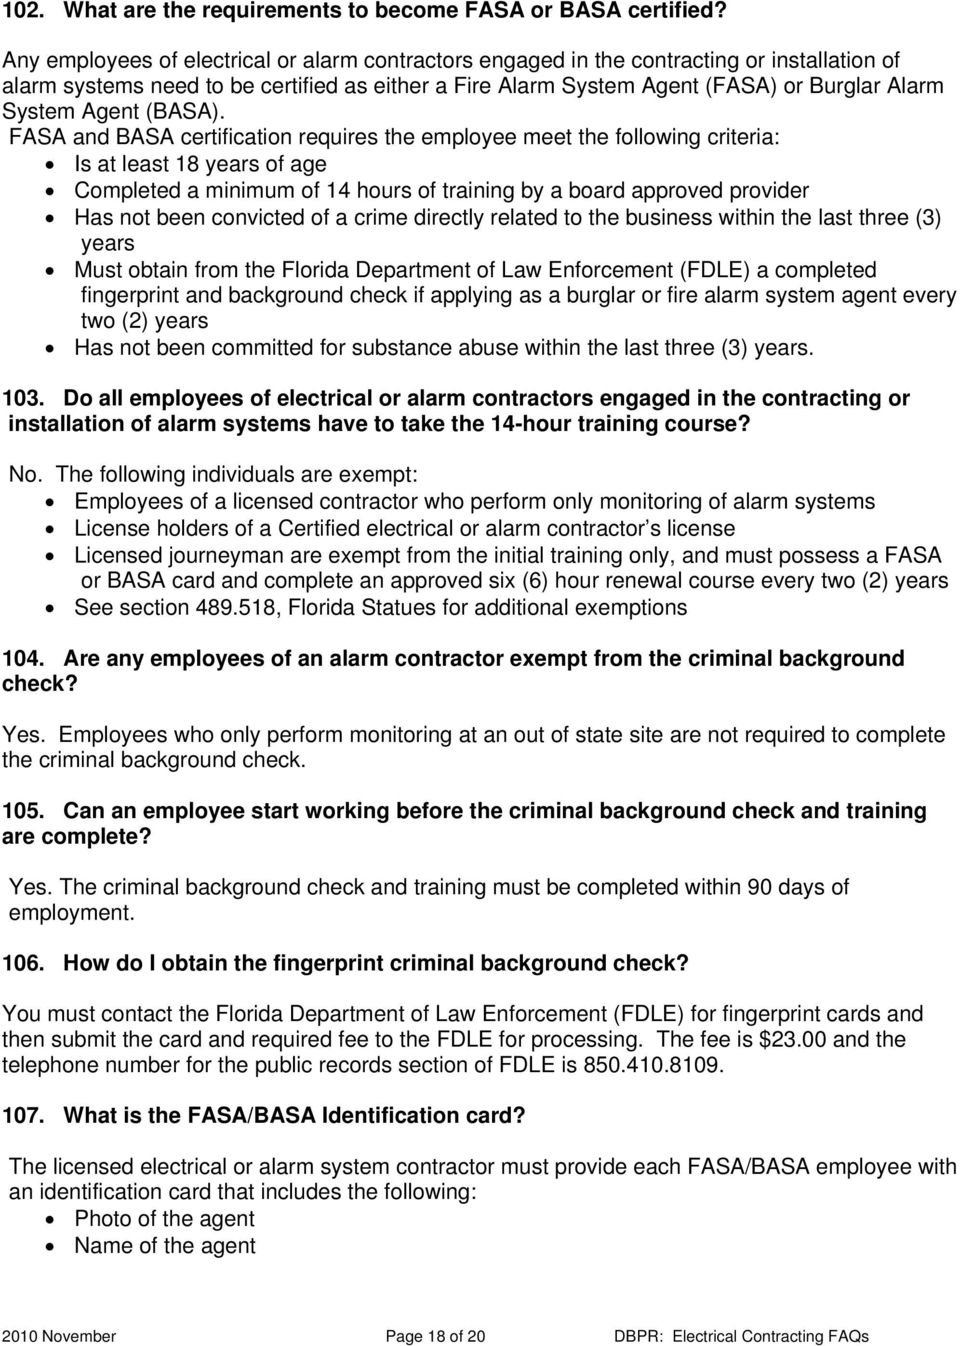 Electrical Contracting Frequently Asked Questions Pdf Free